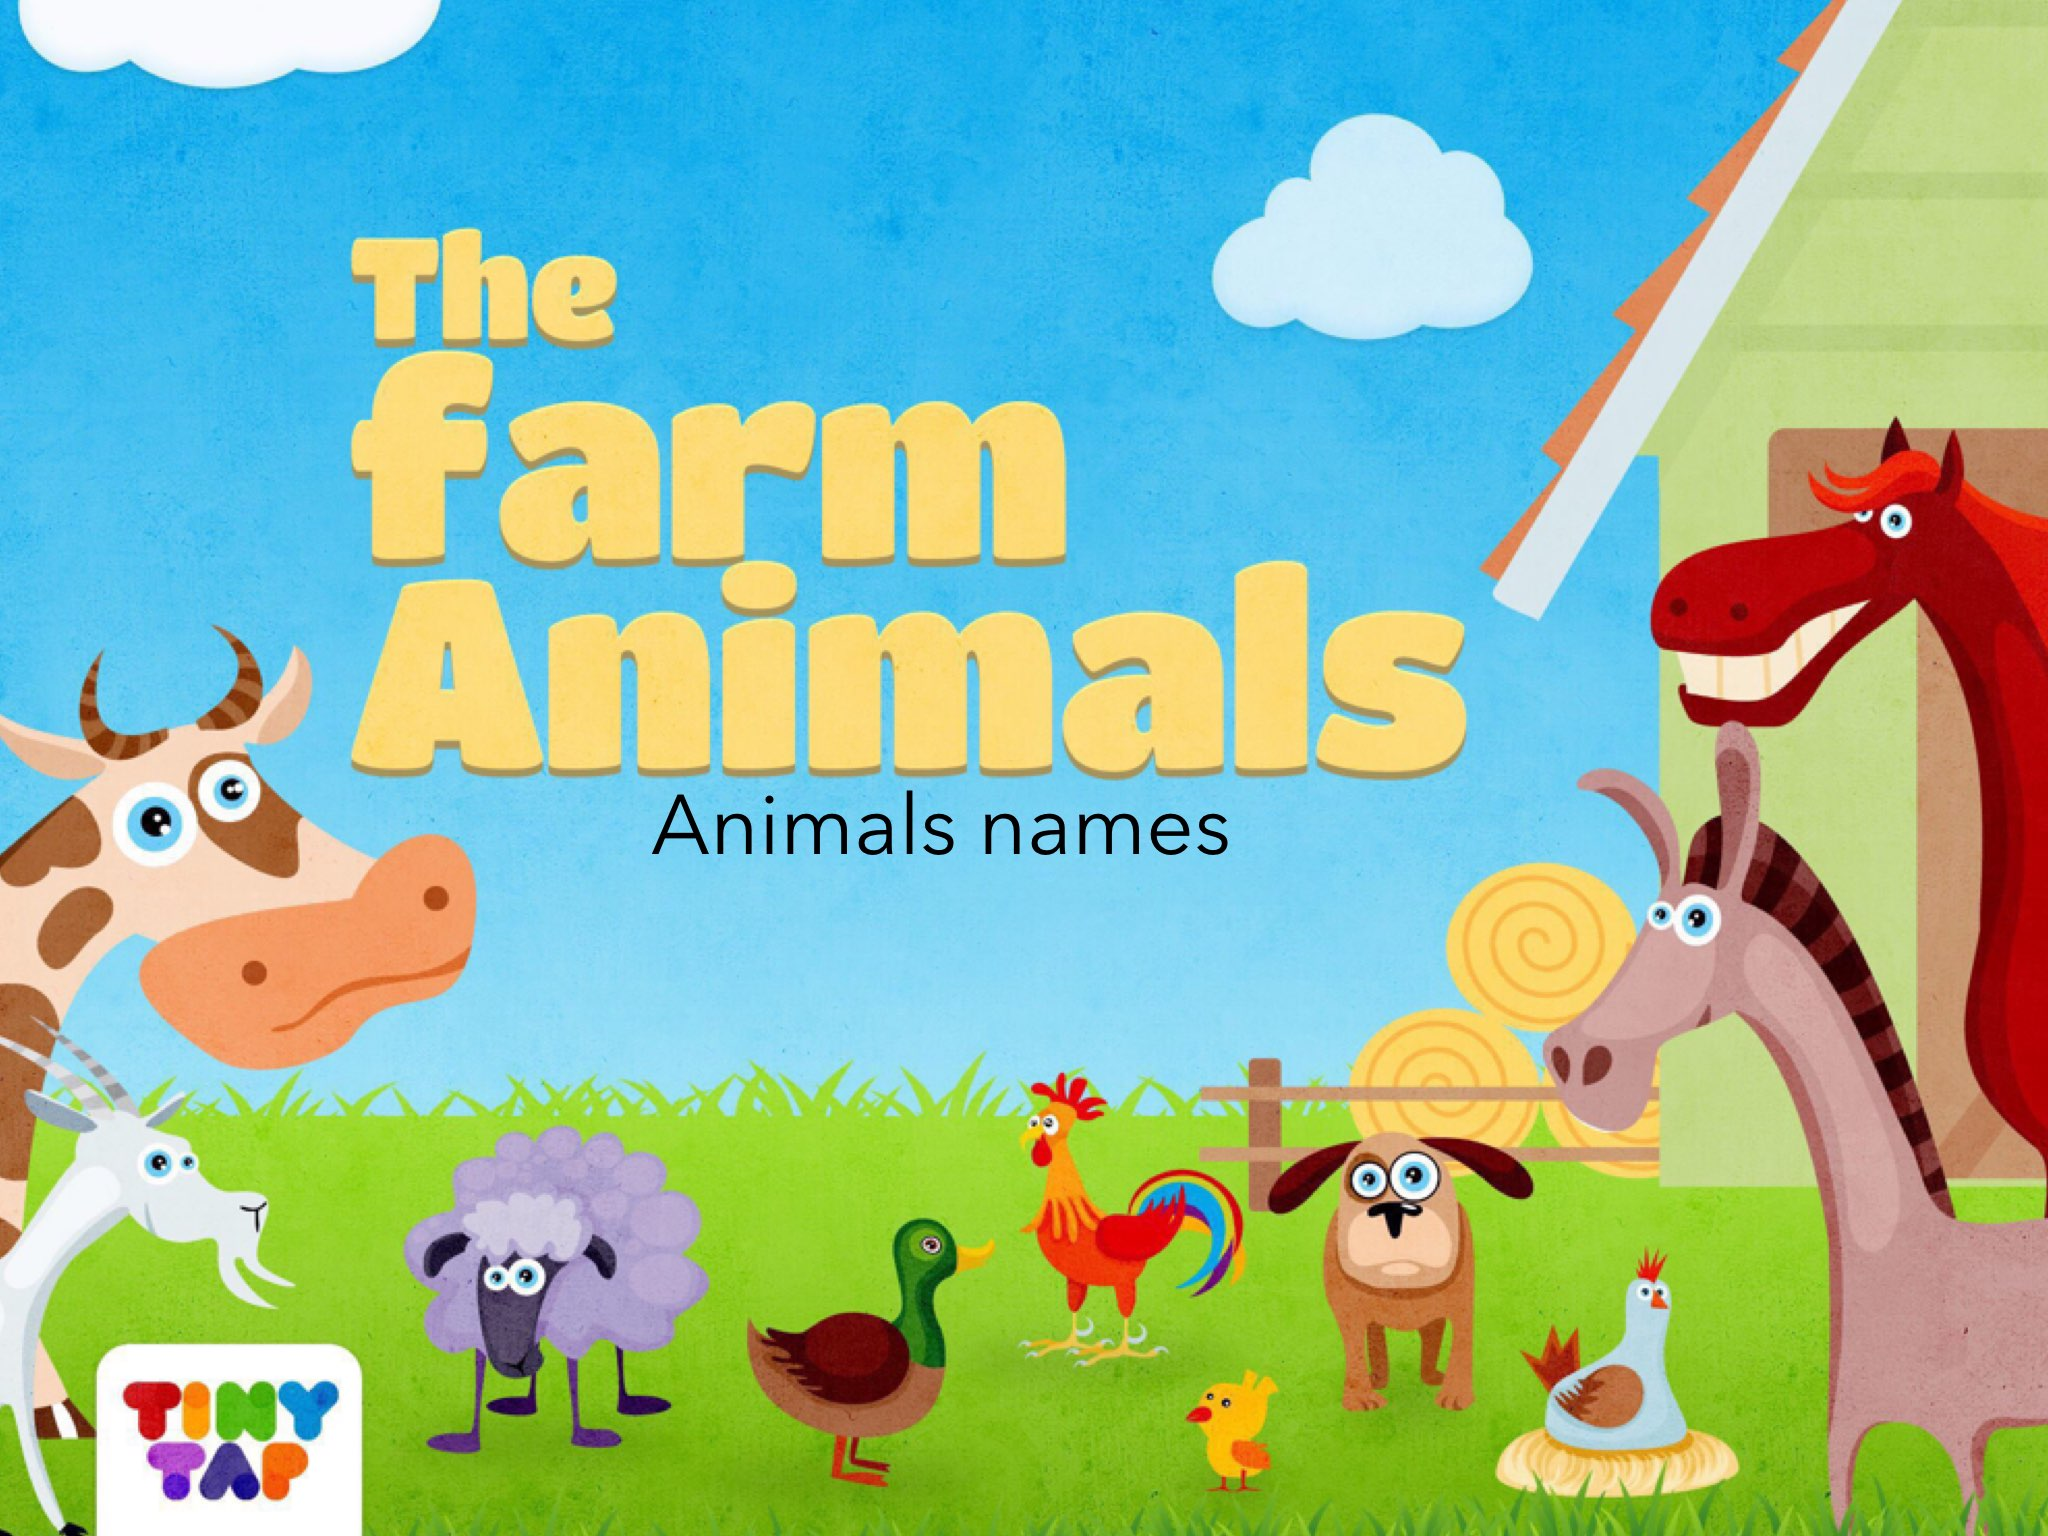 The Farm Animals Animals Names by Mihal Matana - Educational